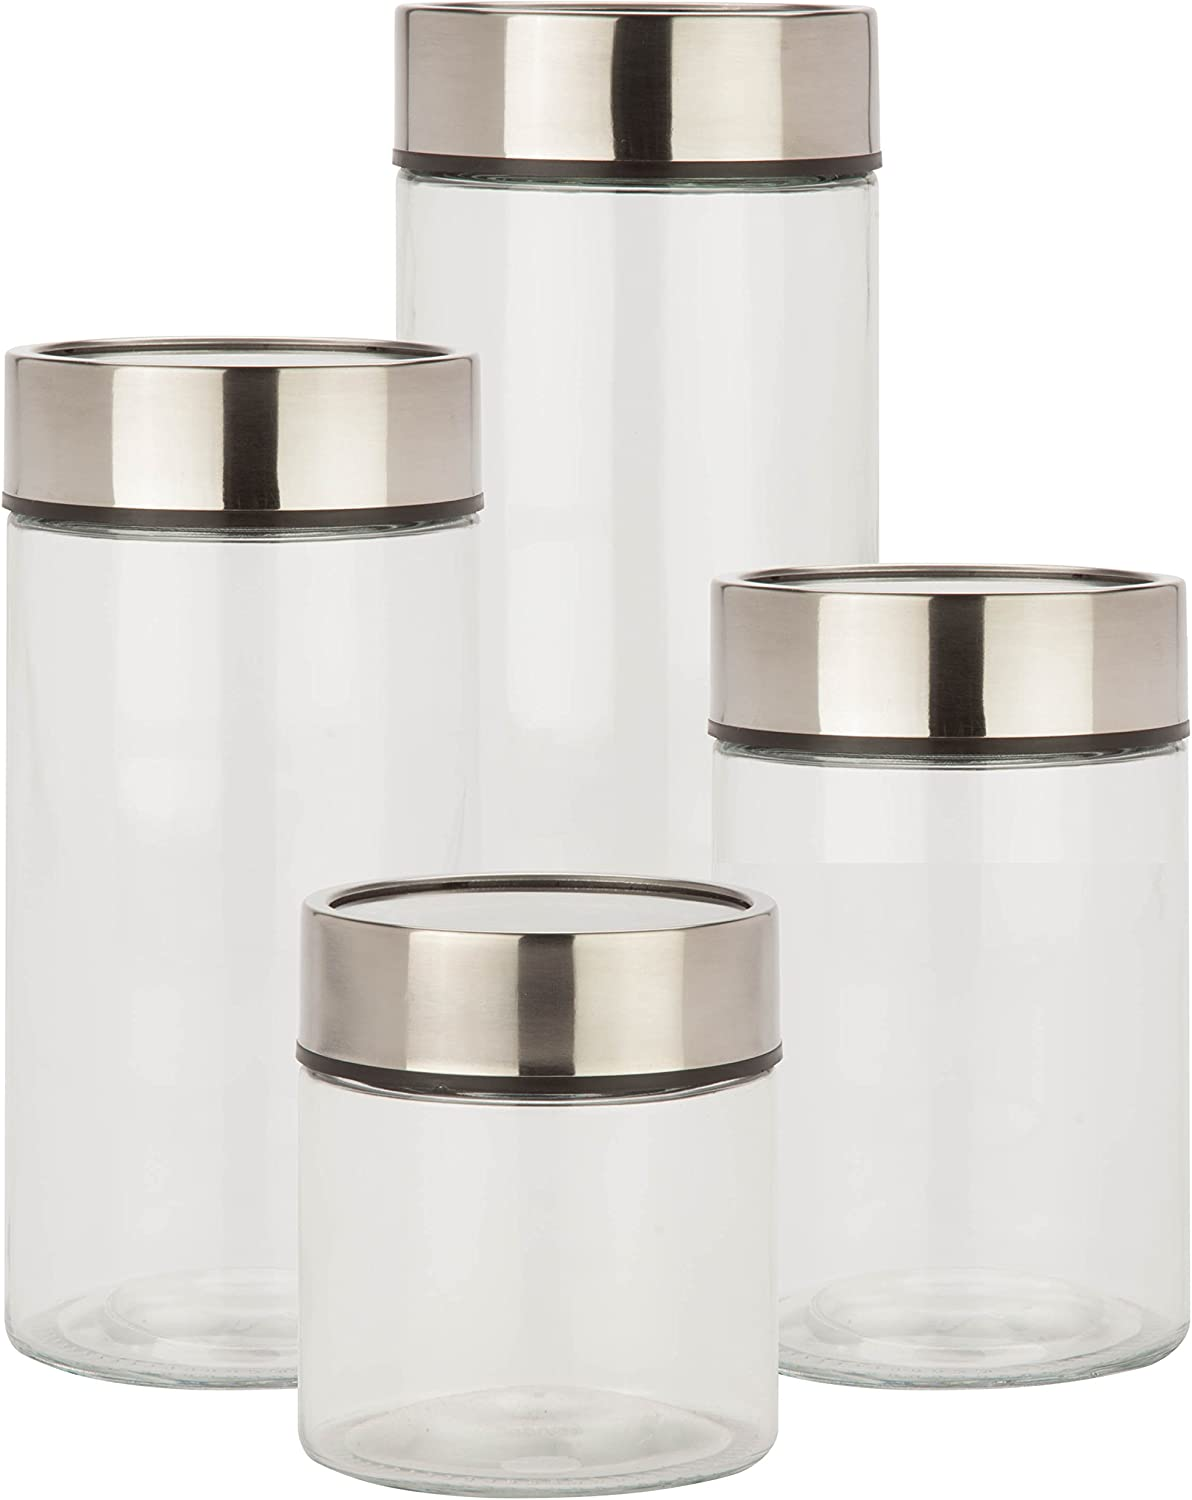 Honey-Can-Do Max 46% OFF Popular shop is the lowest price challenge KCH-06481 4-Piece Date Dial Jar - mL 1350 3000 Set